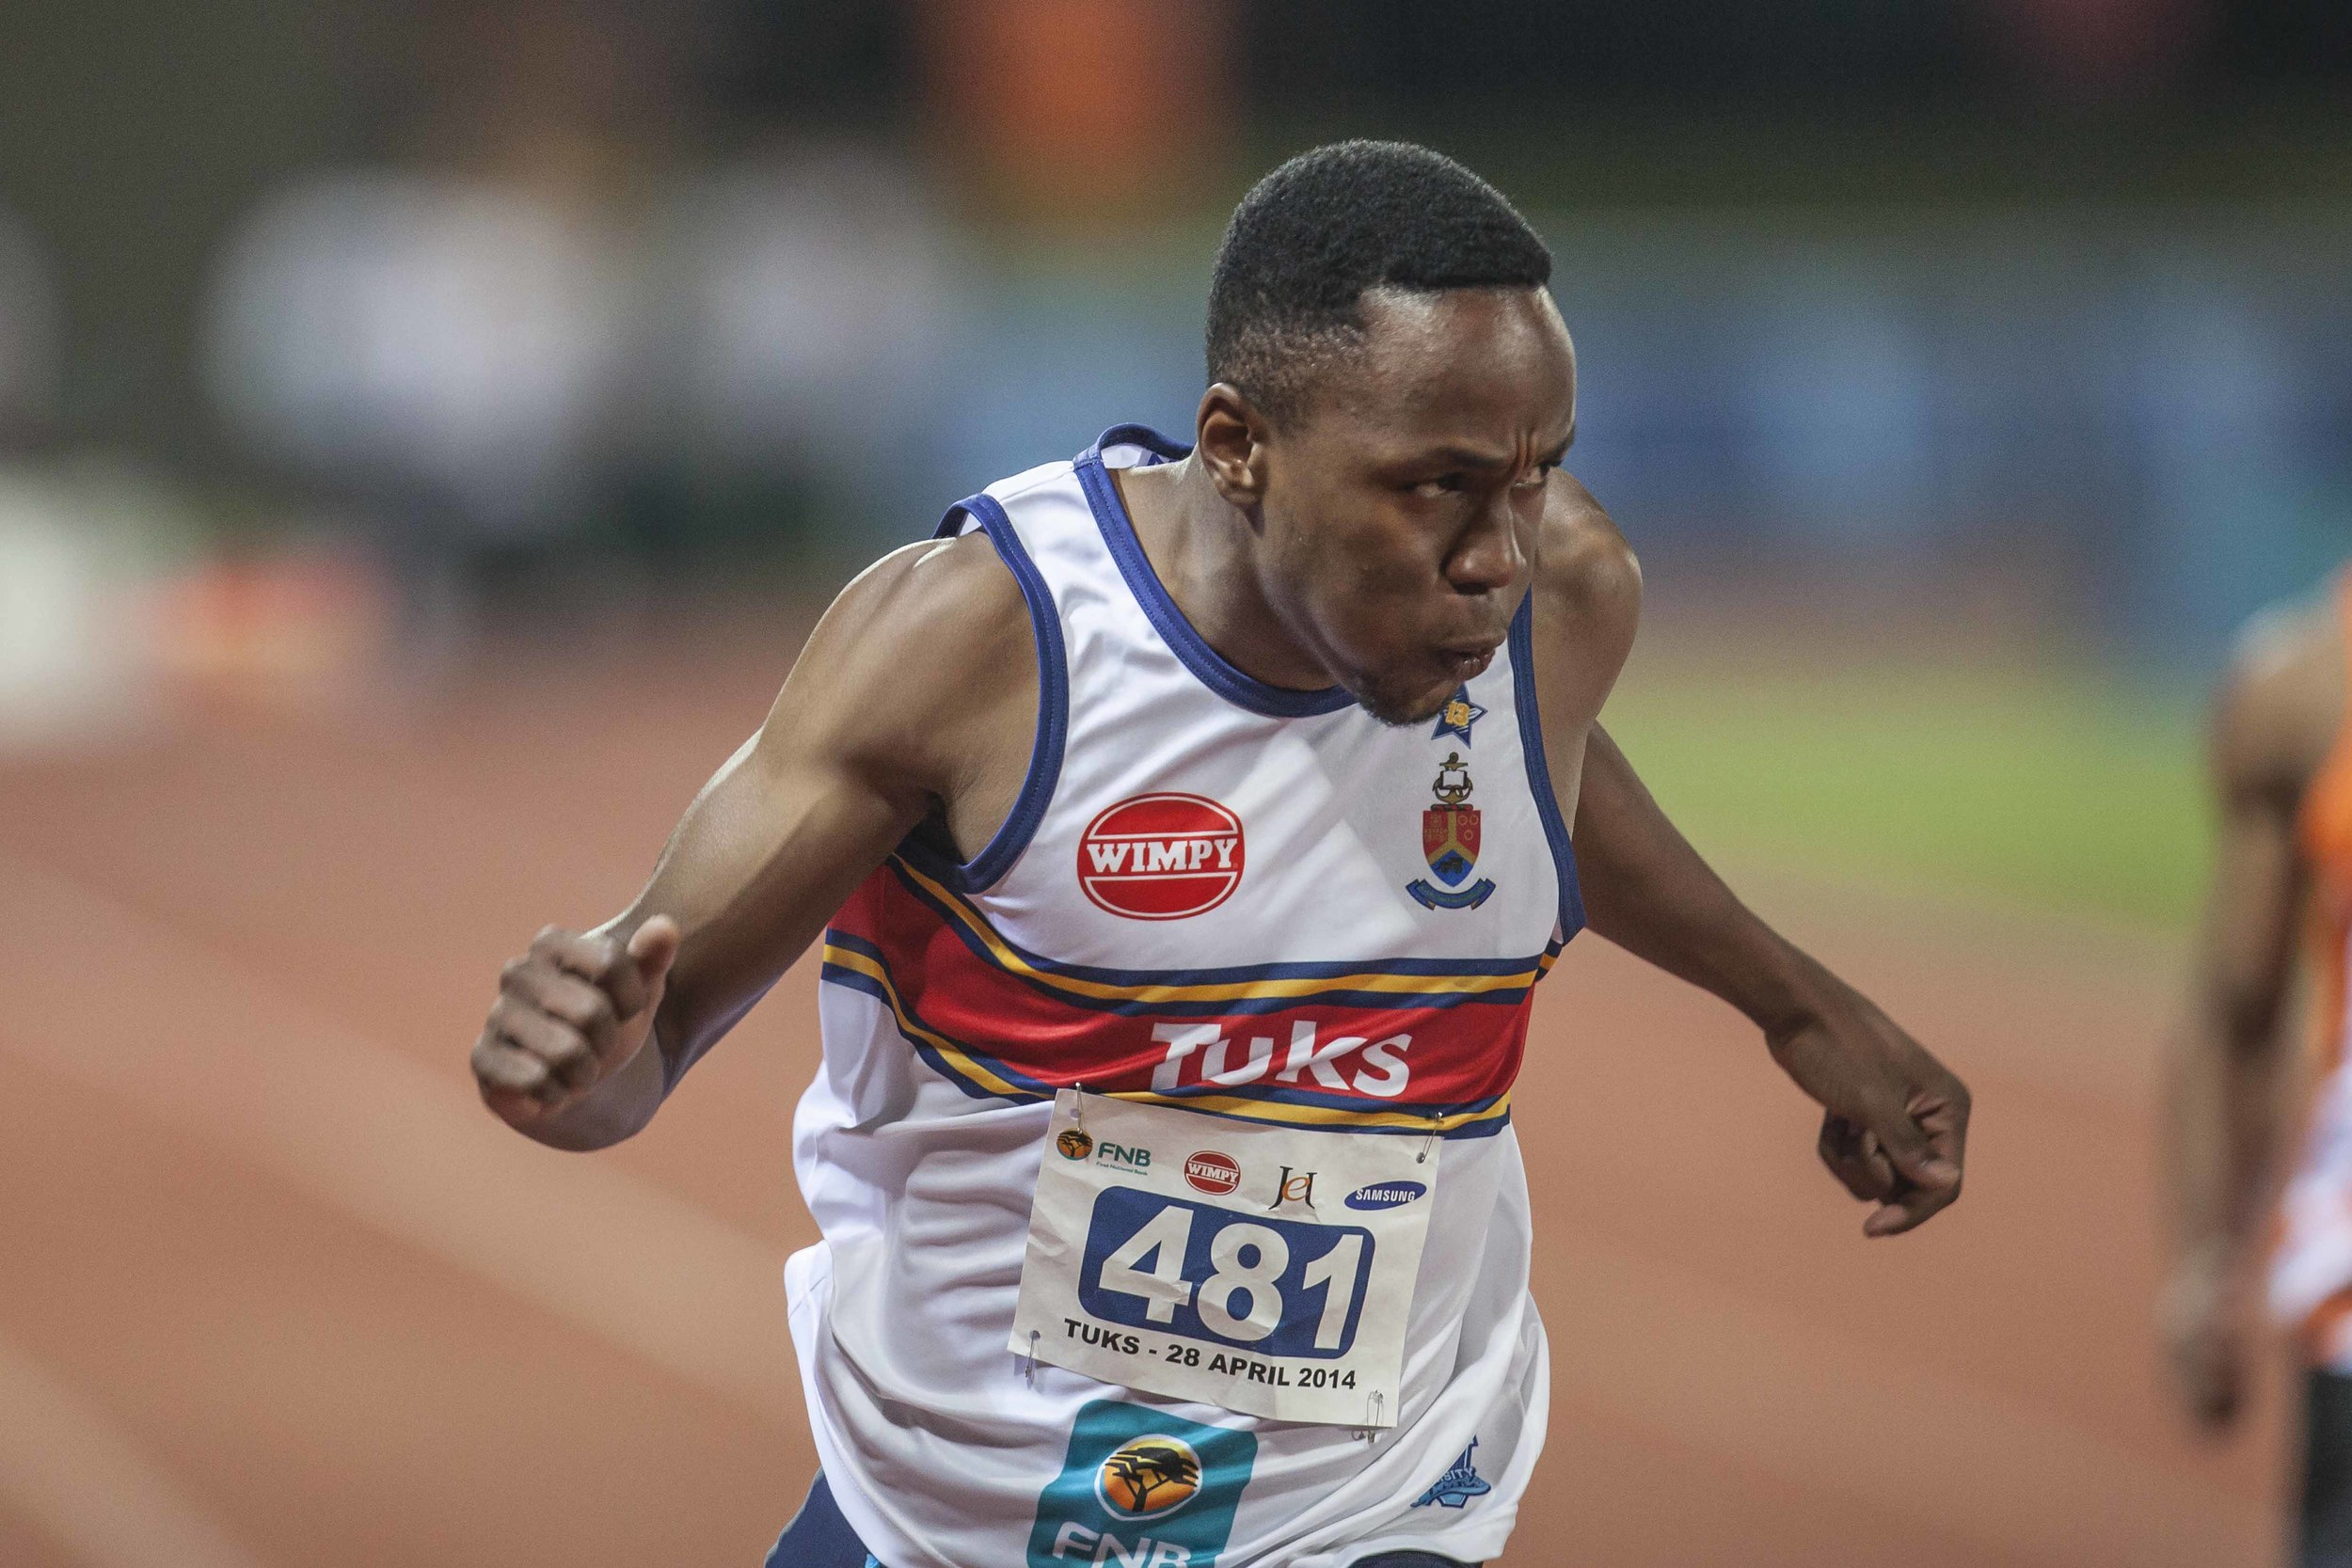 Akani Simbine crosses the line for Tuks. The athletics program at Tuks is one of the best in the country. Their athletes have won both Varsity Athletics and USSA for two consecutive years. Image supplied by Tuks Sport.